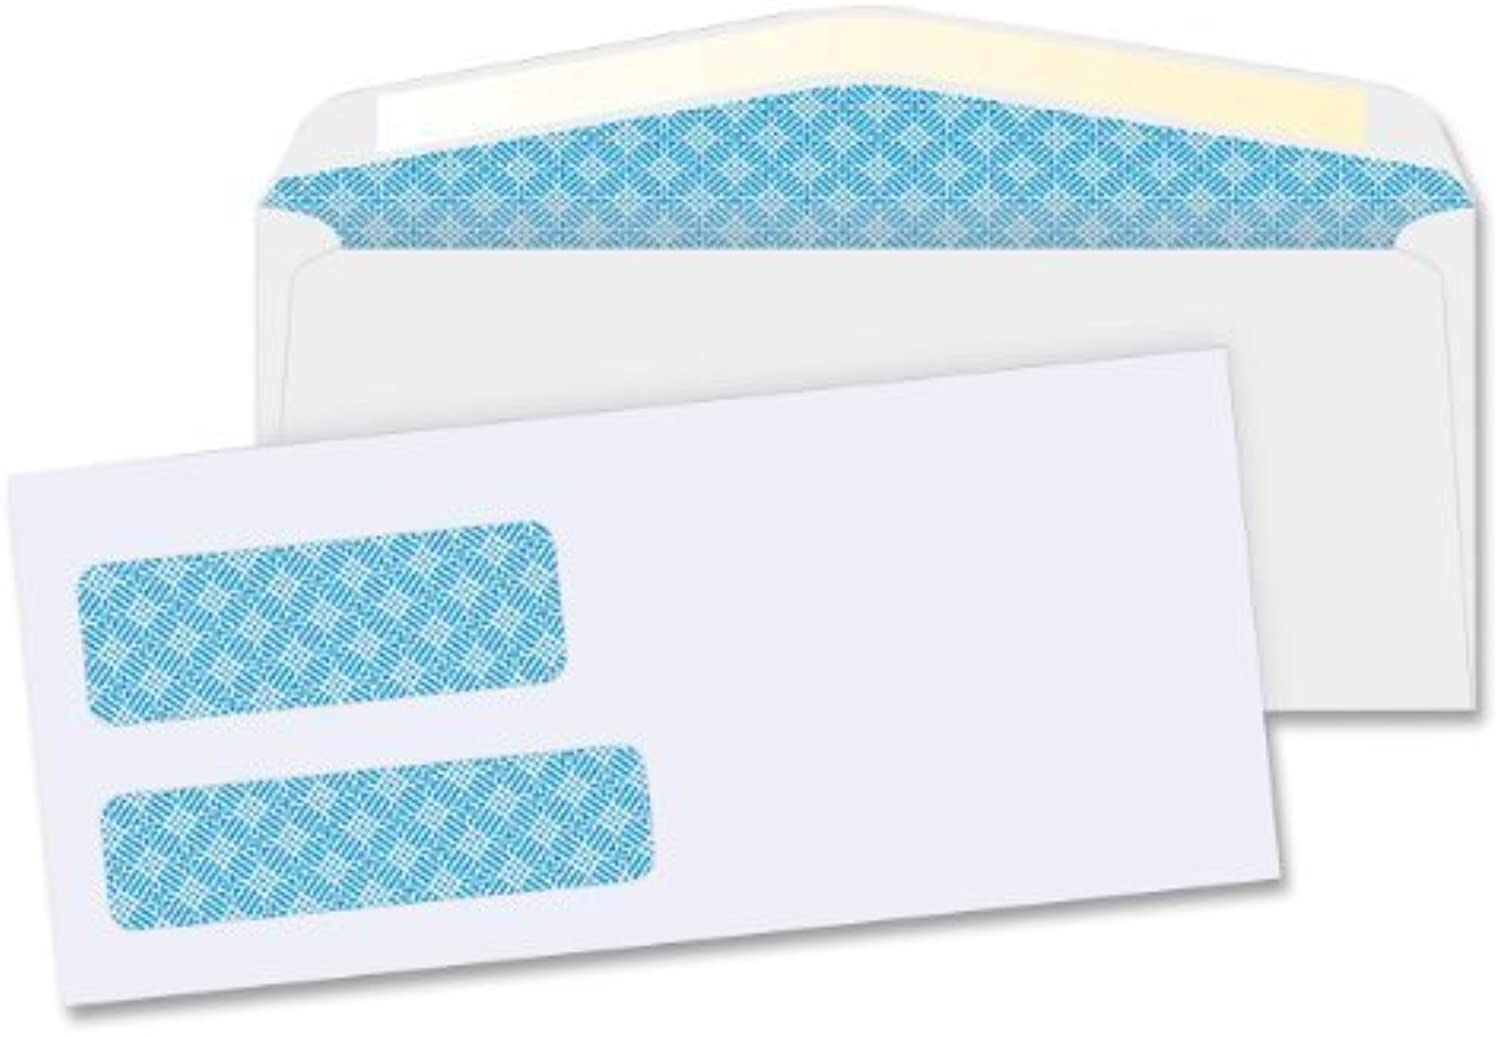 Business Source 36680 Double Window Envelopes,No. 9,3-7 8 in.x8-7 8 in.,500 BX,Weiß by Business Source B0141N5CNQ   Geeignet für Farbe